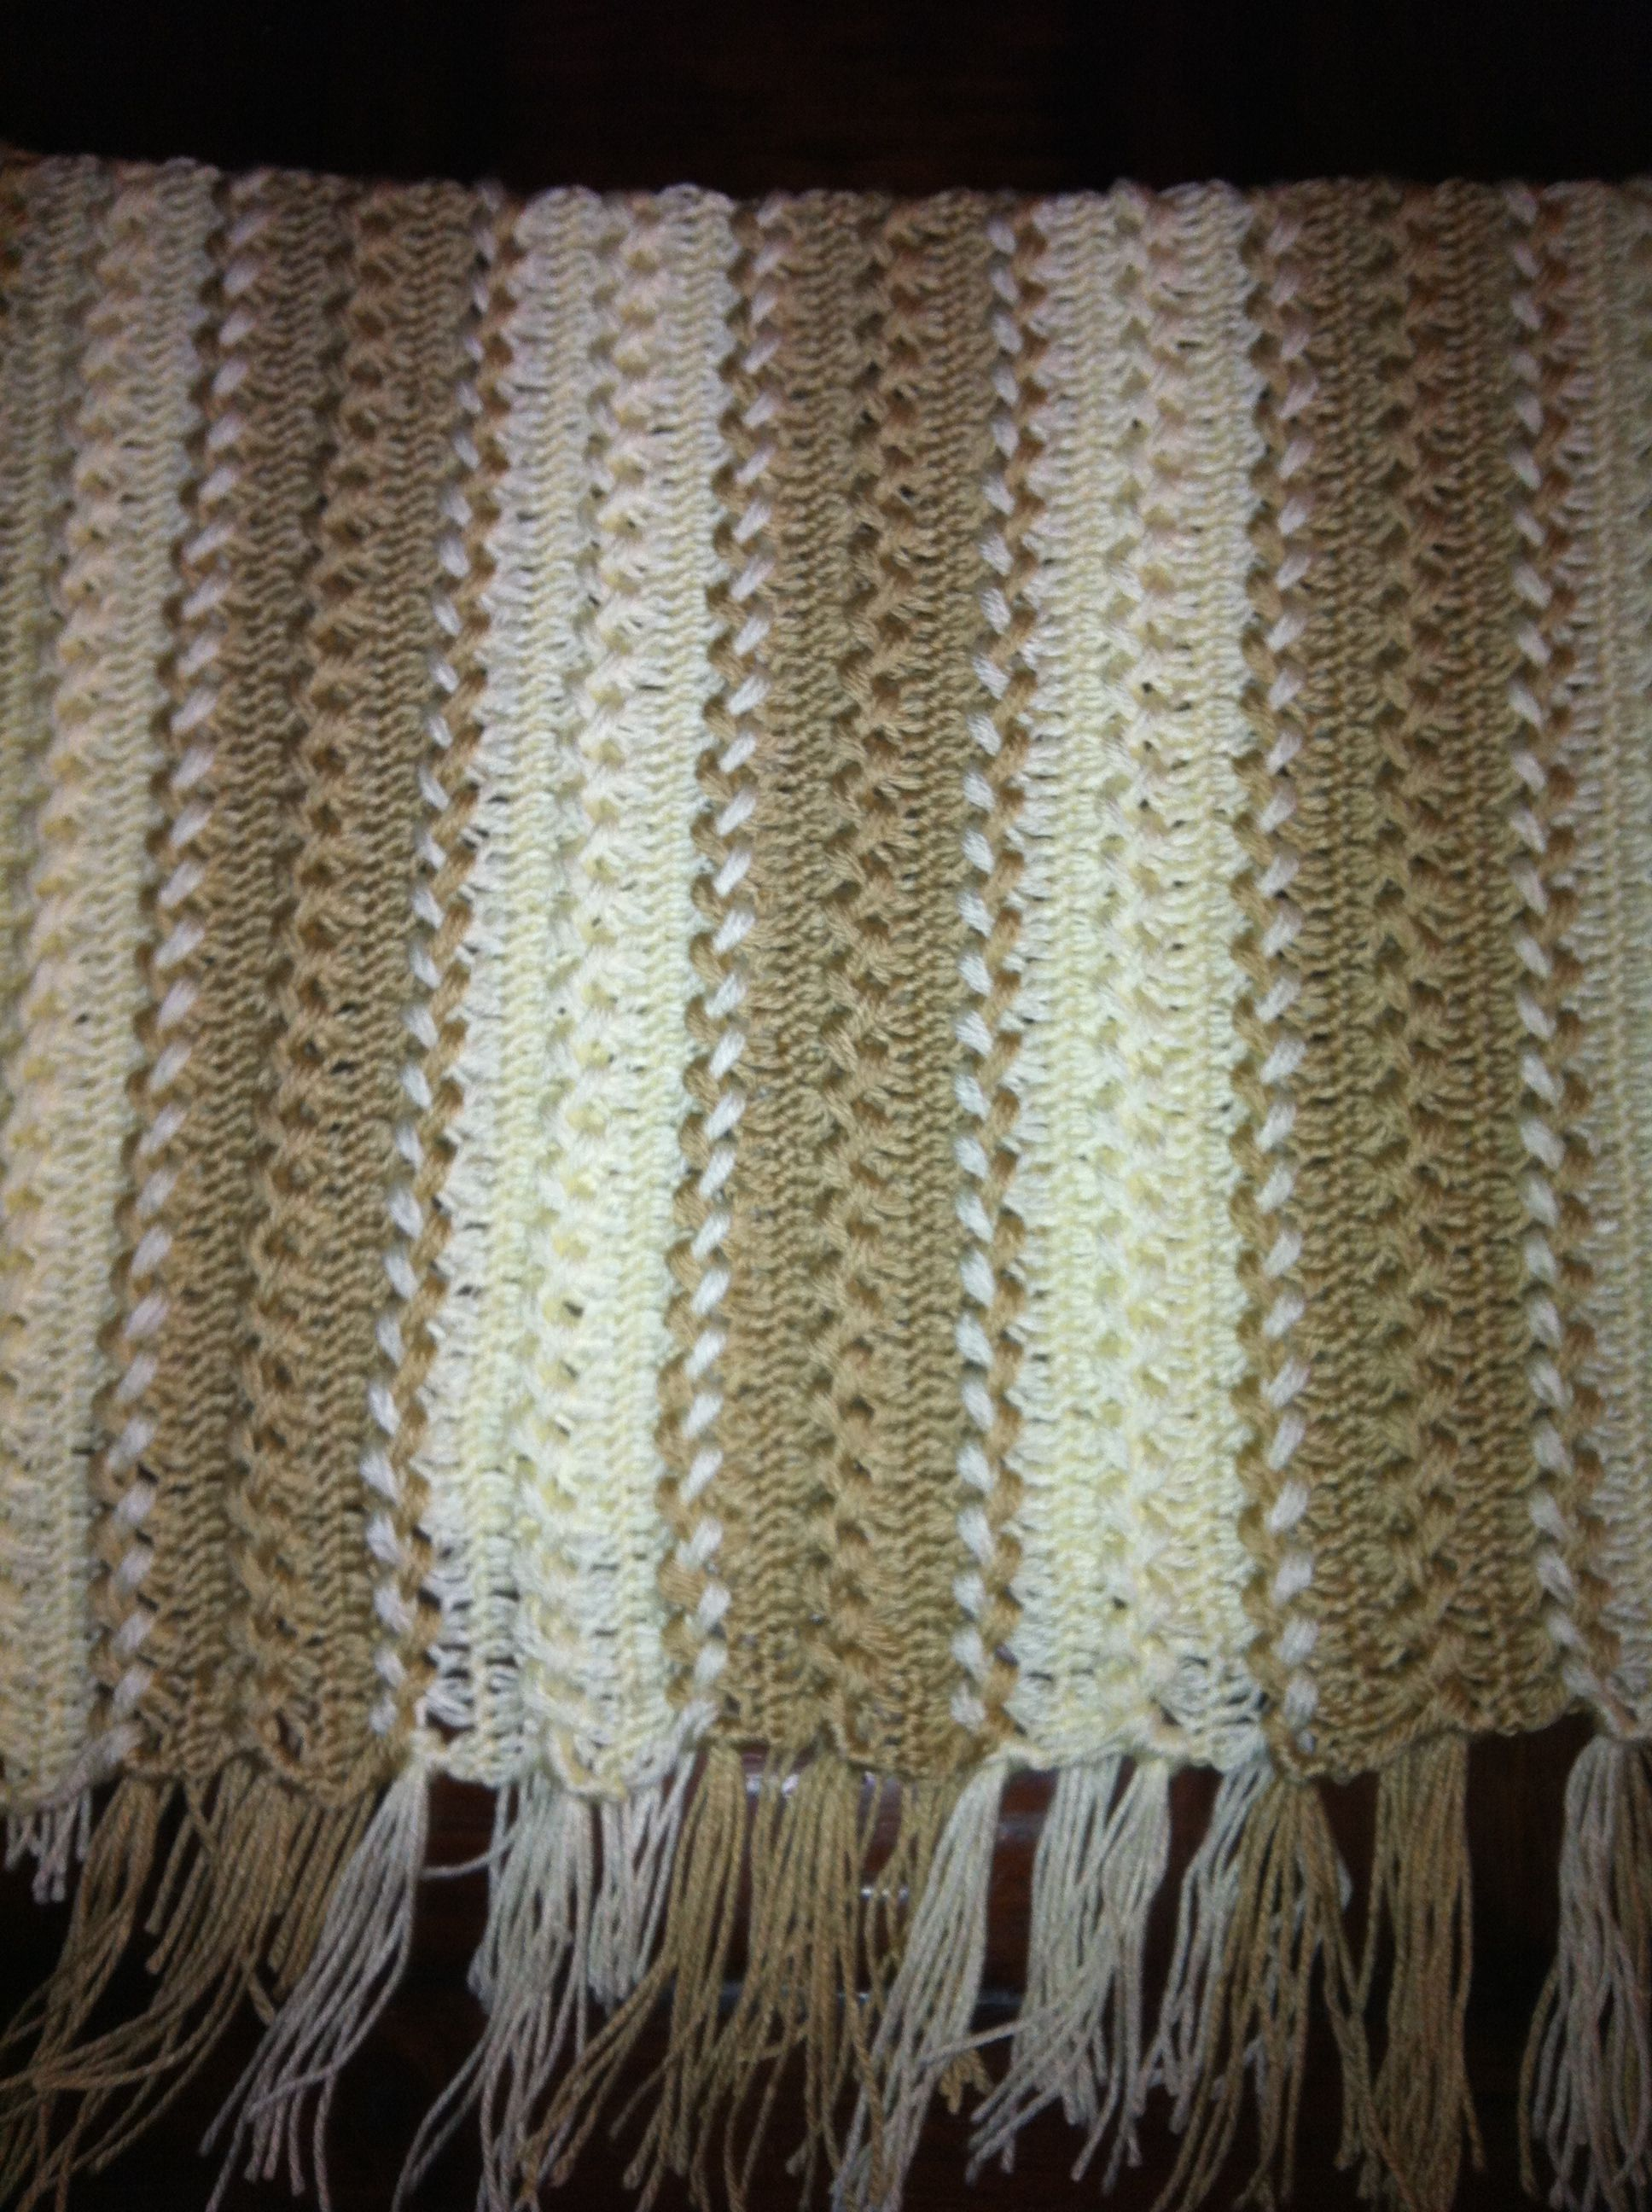 Hair pin lace afghan | Craft | Pinterest | Ganchillo